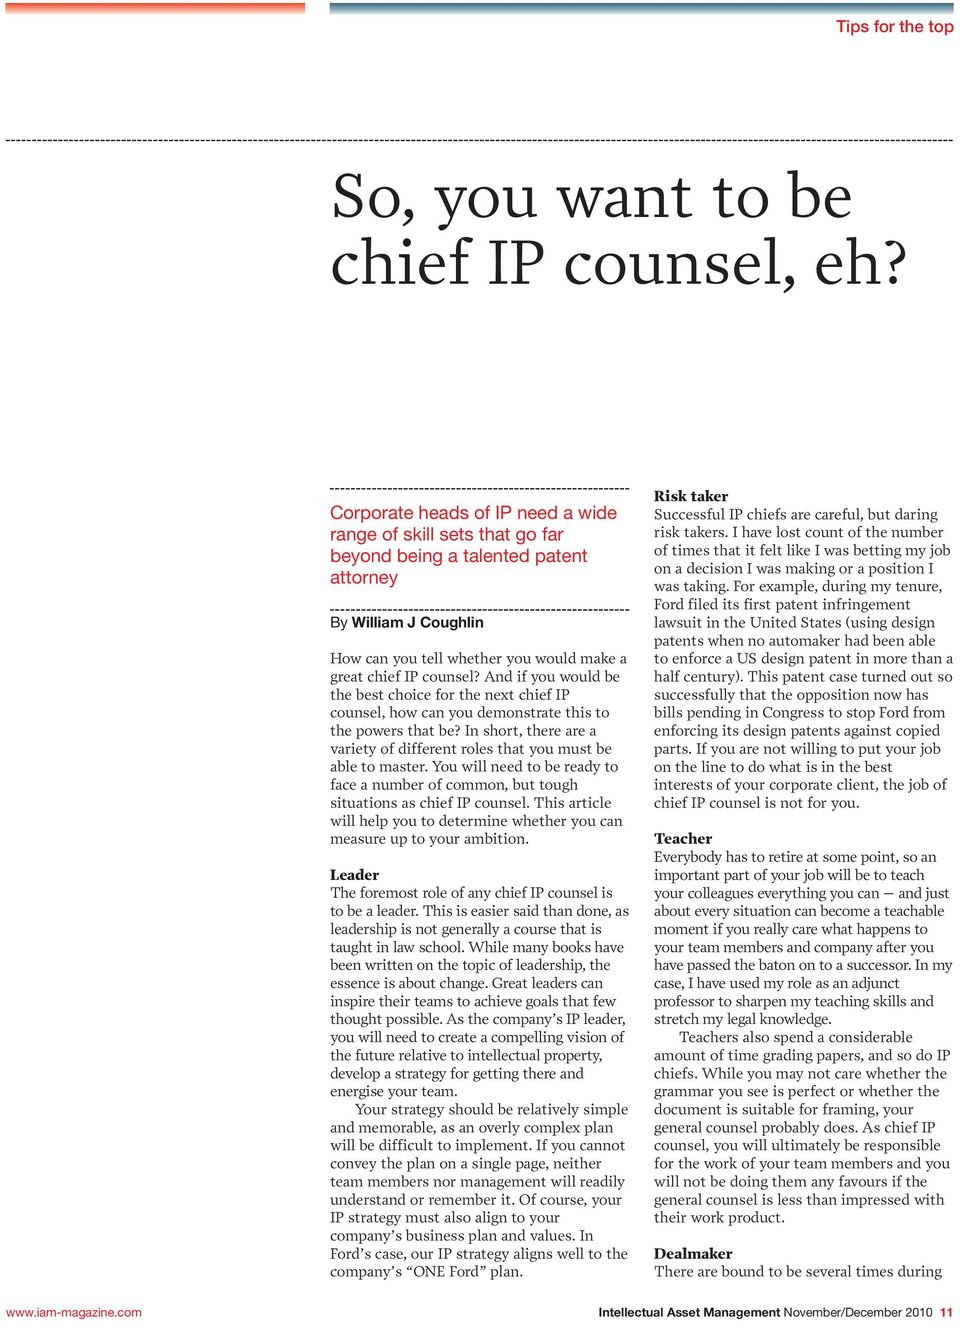 And if you would be the best choice for the next chief IP counsel, how can you demonstrate this to the powers that be? In short, there are a variety of different roles that you must be able to master.